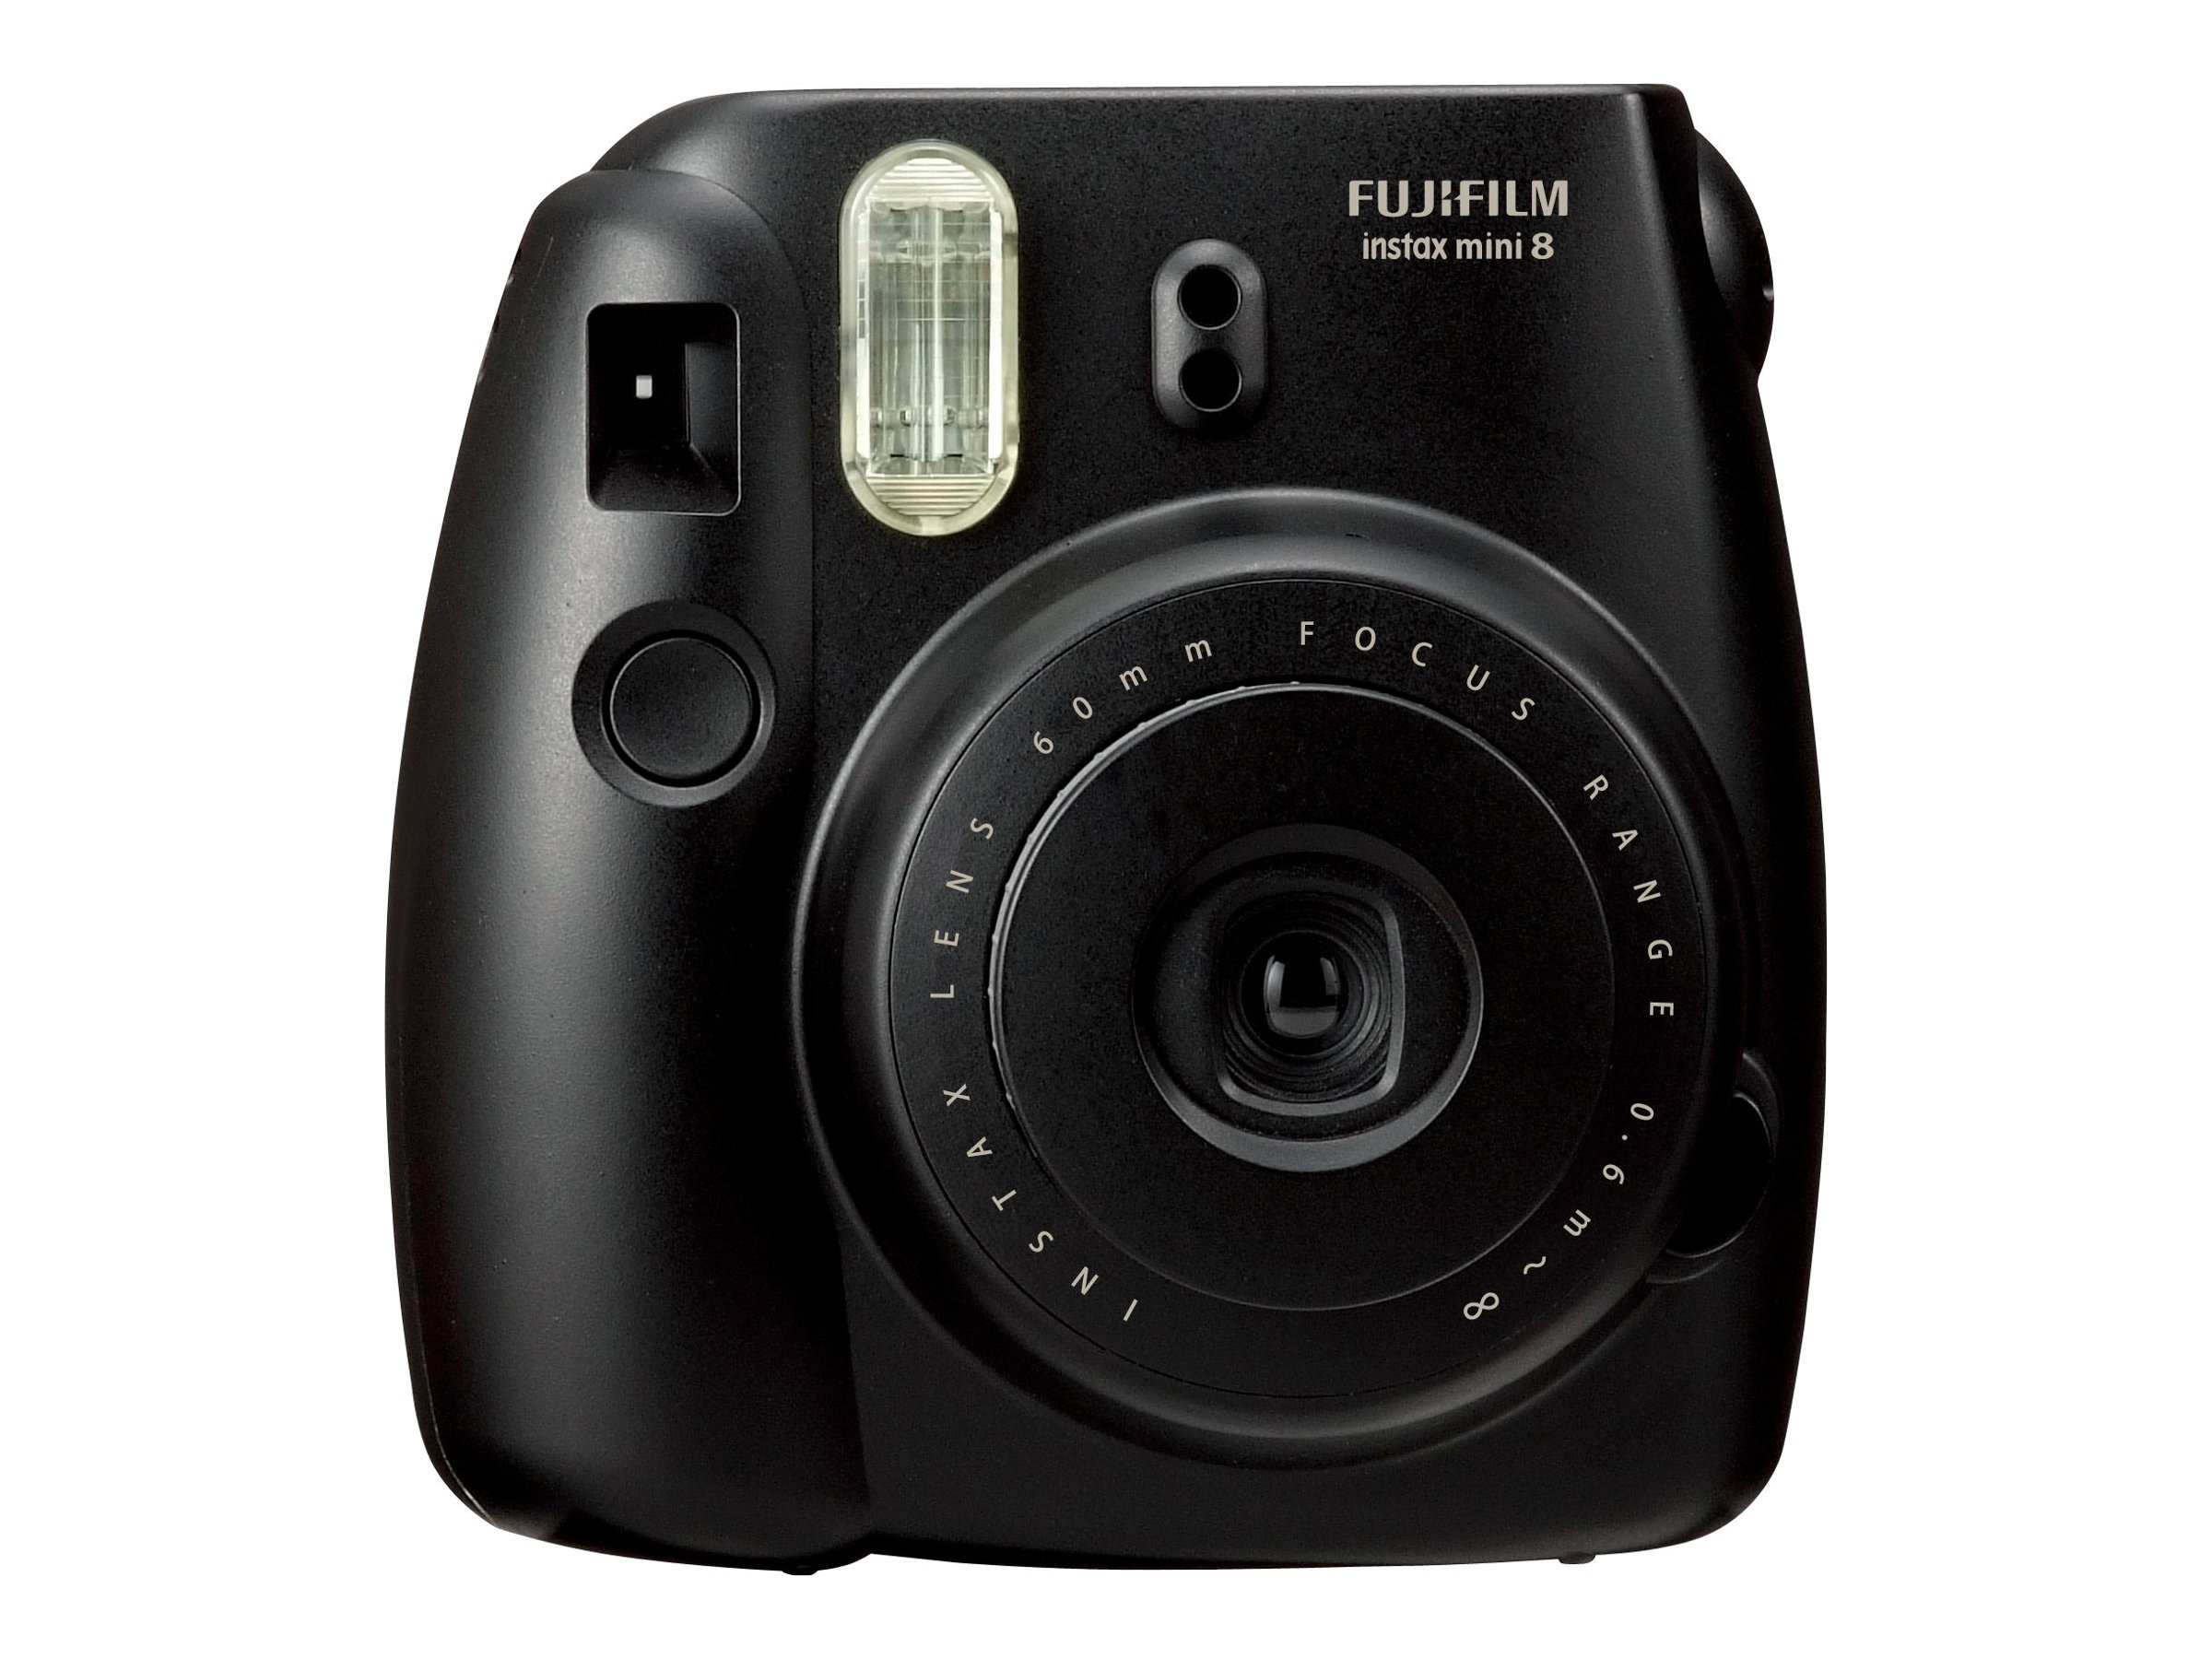 Fujifilm Instax Mini 8 Camera, Black